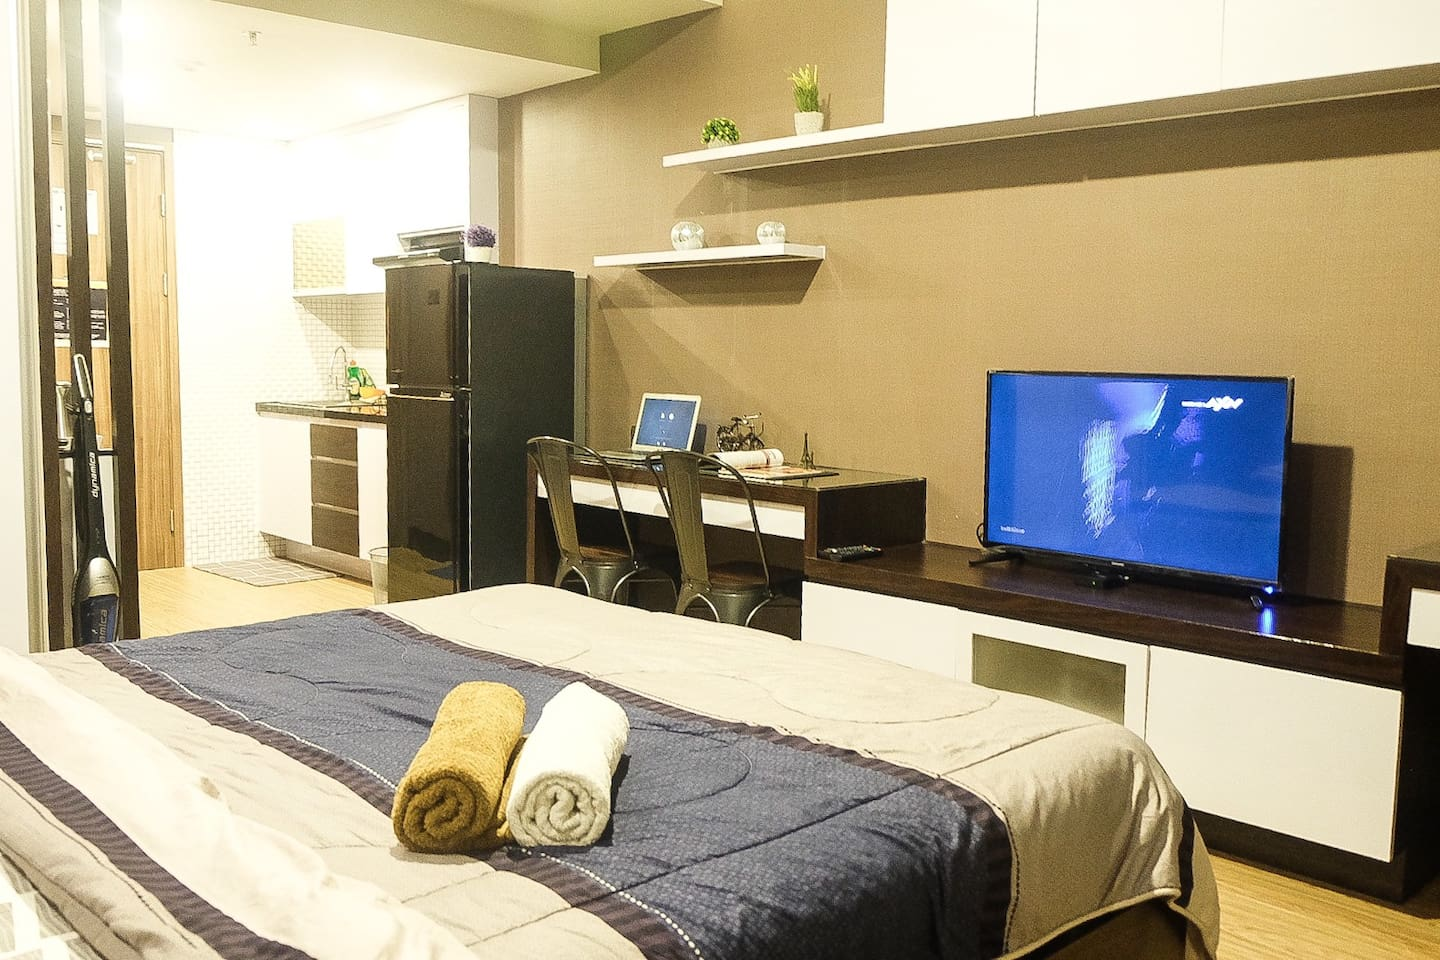 Beautifully furnished studio bedroom with complete facilities. - High Speed Unlimited Wifi - CABLE TV - Refrigerator - Induction Stove - Private Balcony - Complete Kitchen Set - Complete Table Ware Etc